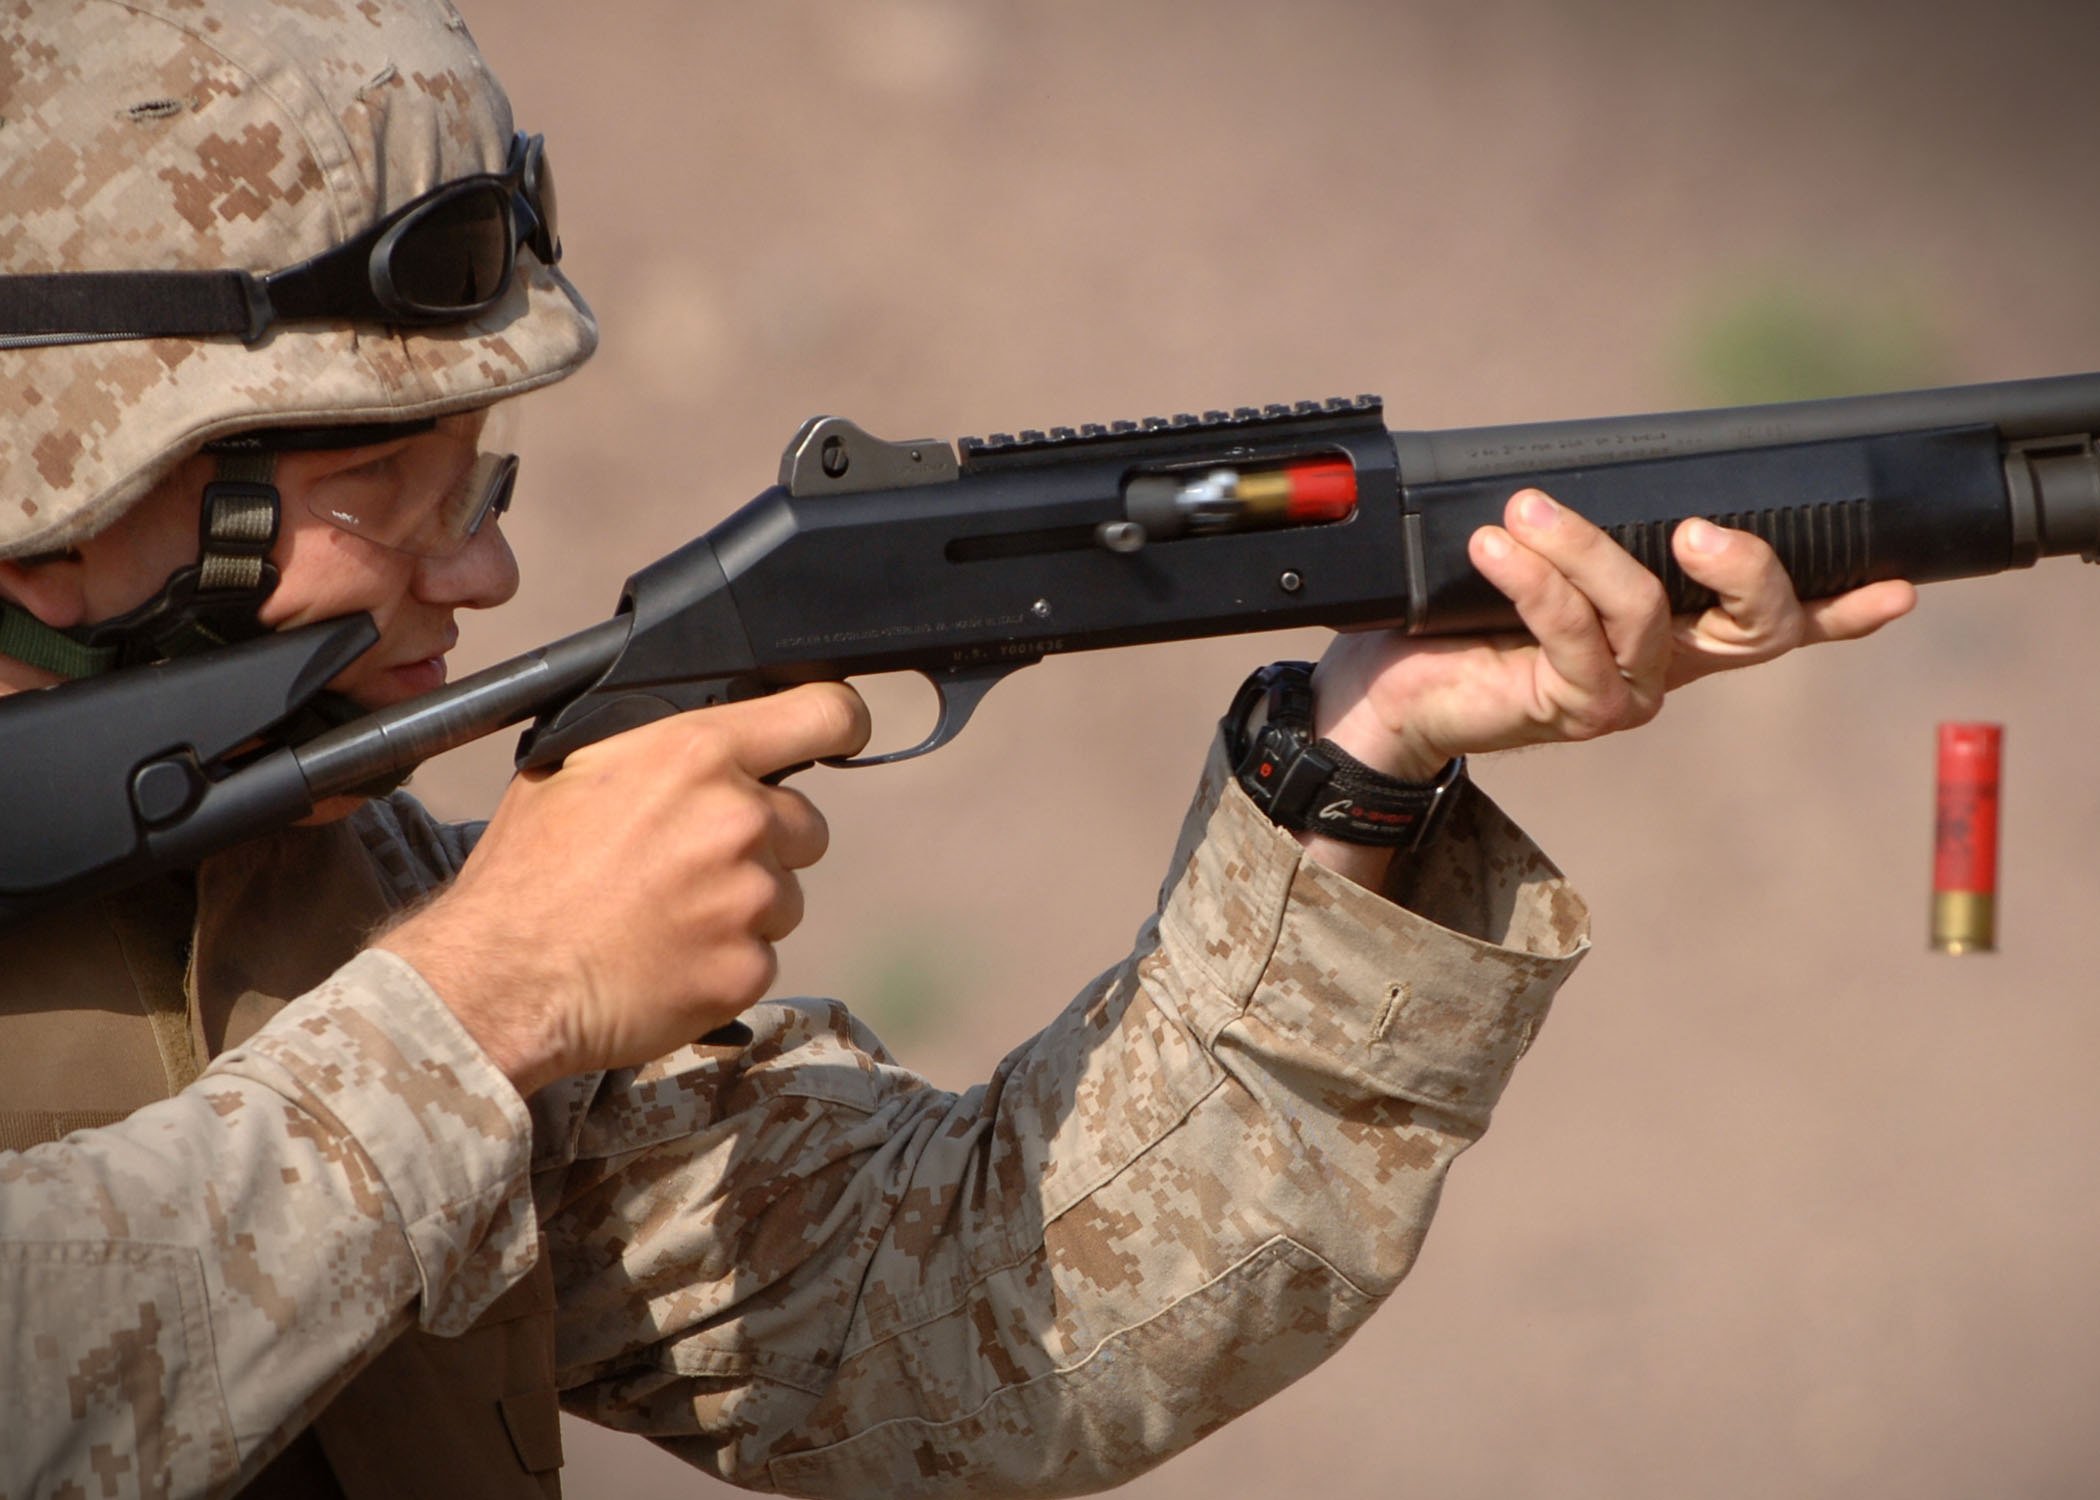 Shotgun_in_training_US_military.jpg